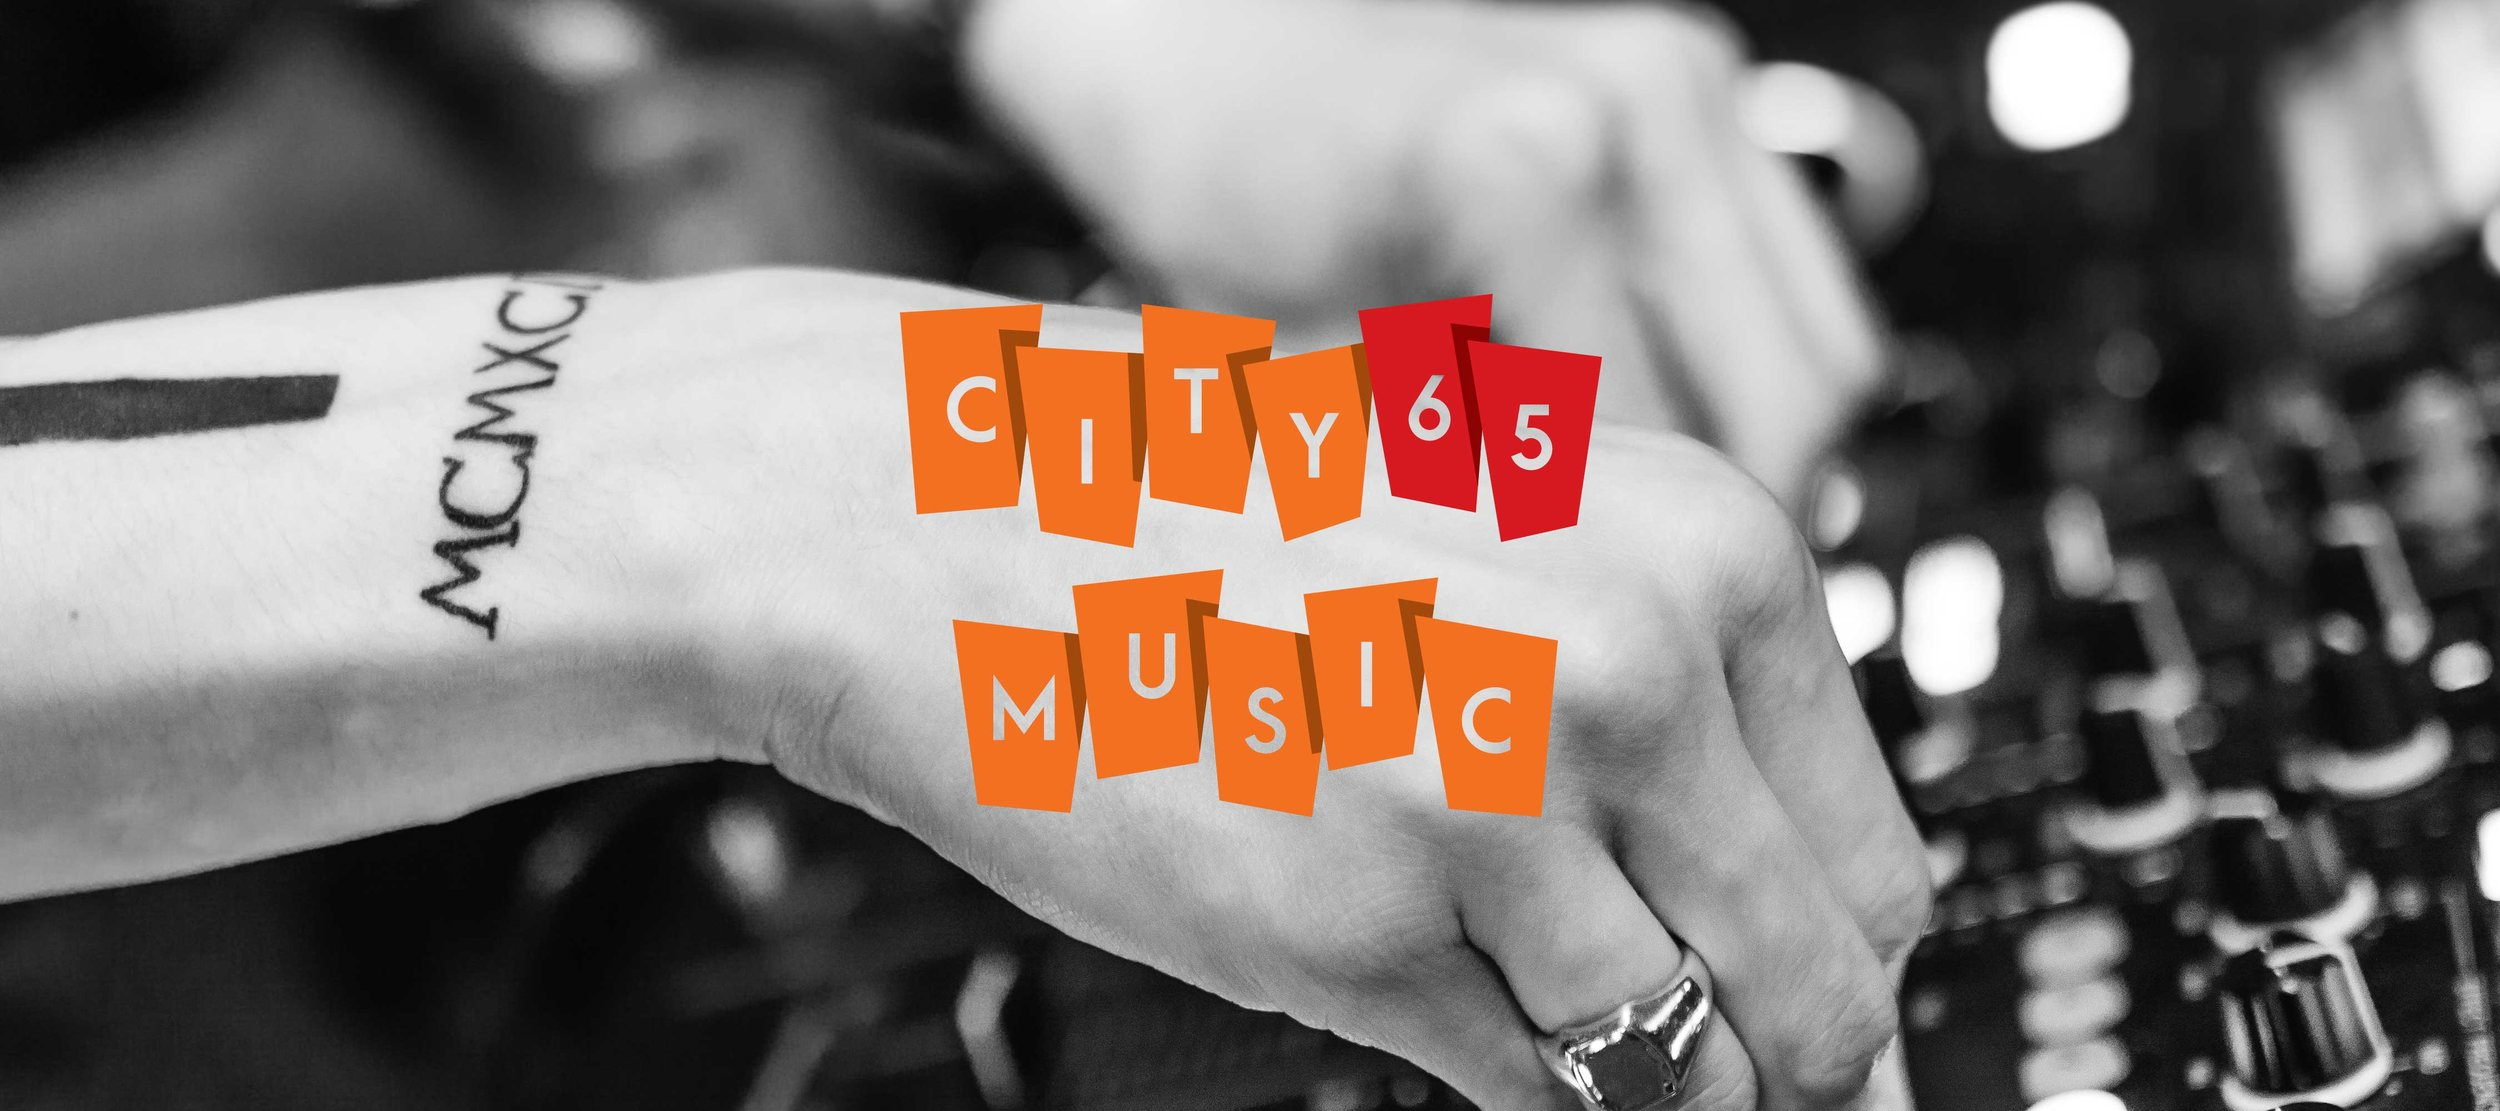 CITY65 Music - A showcase of Singapore's many talented musical acts.